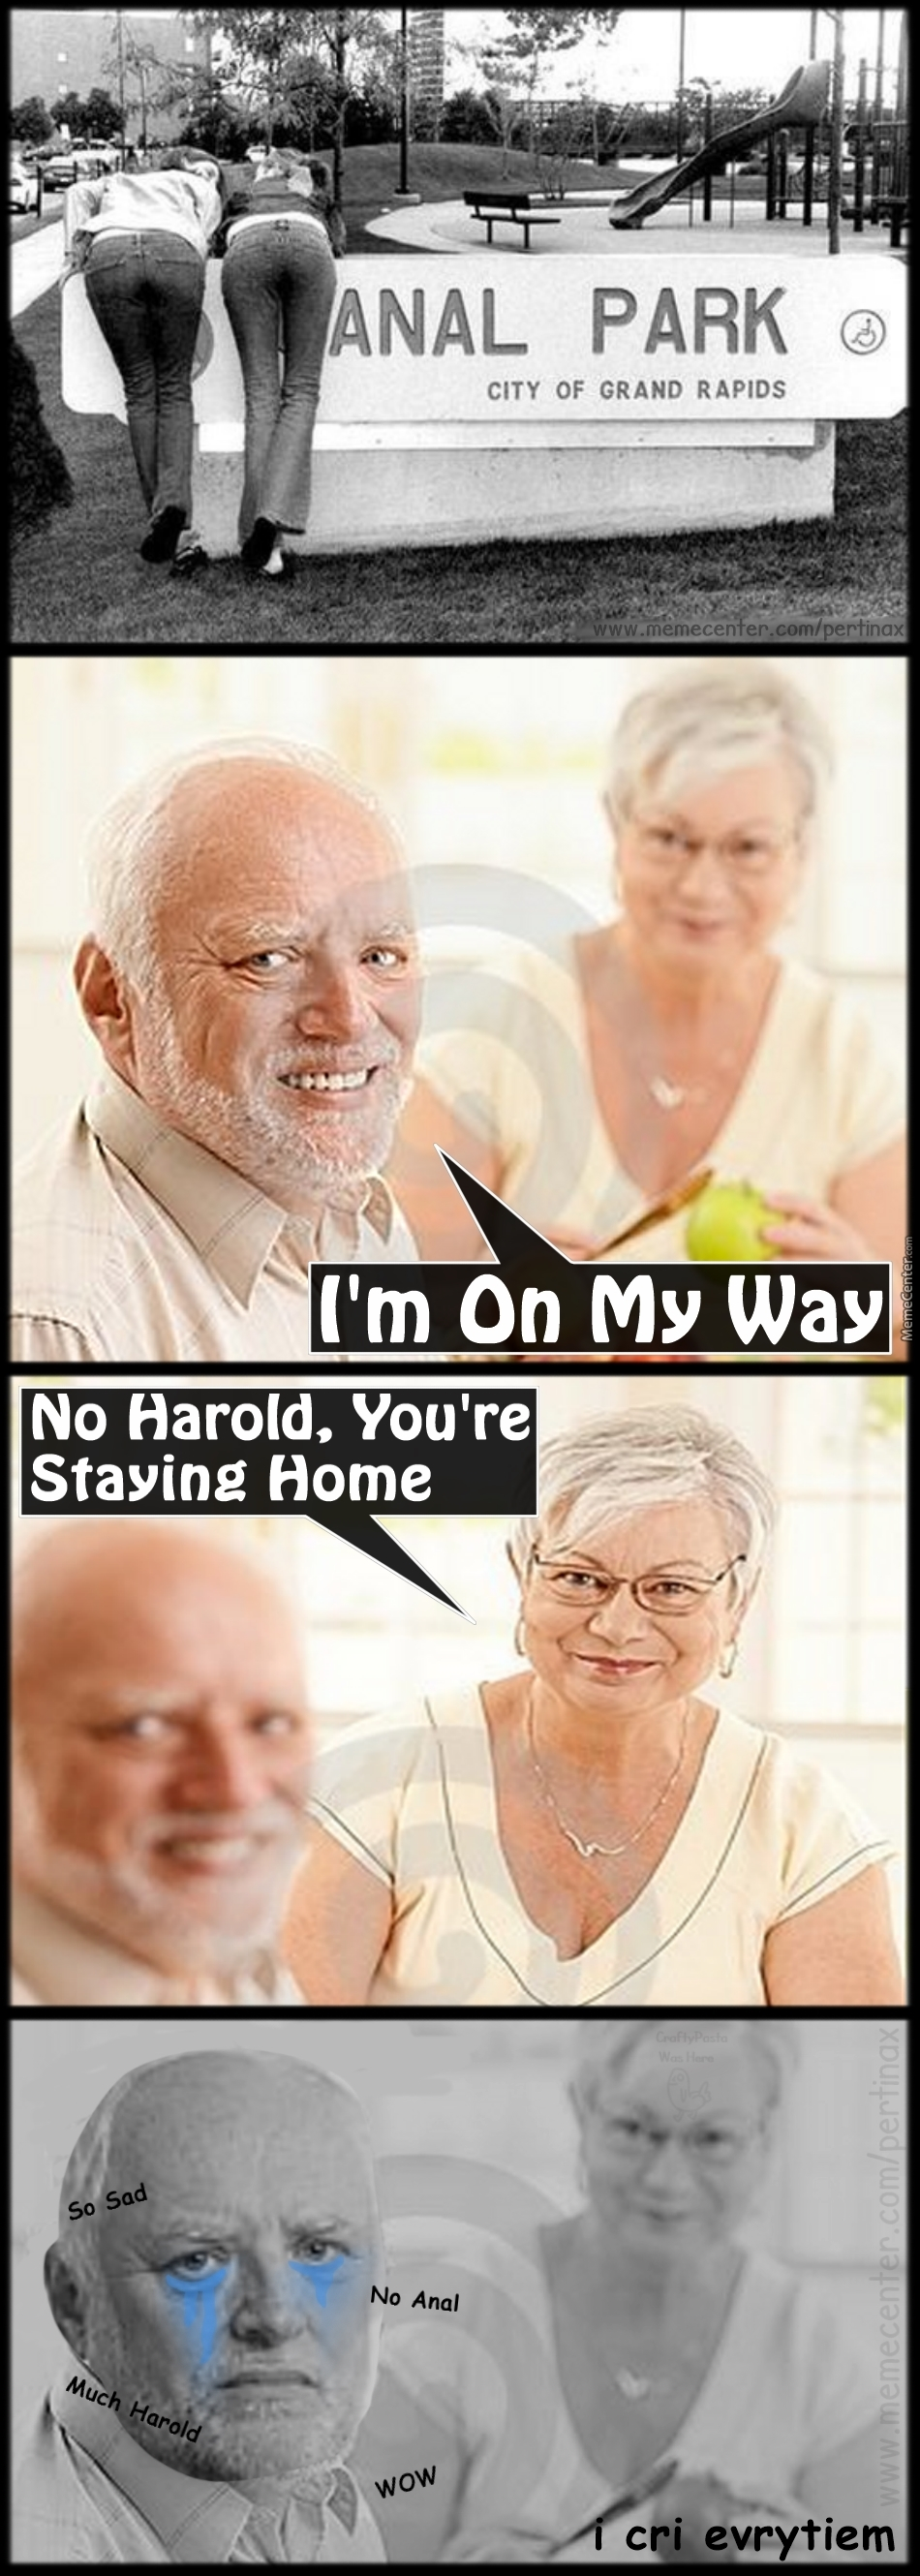 No A̶n̶a̶l̶ For Harold Today :(